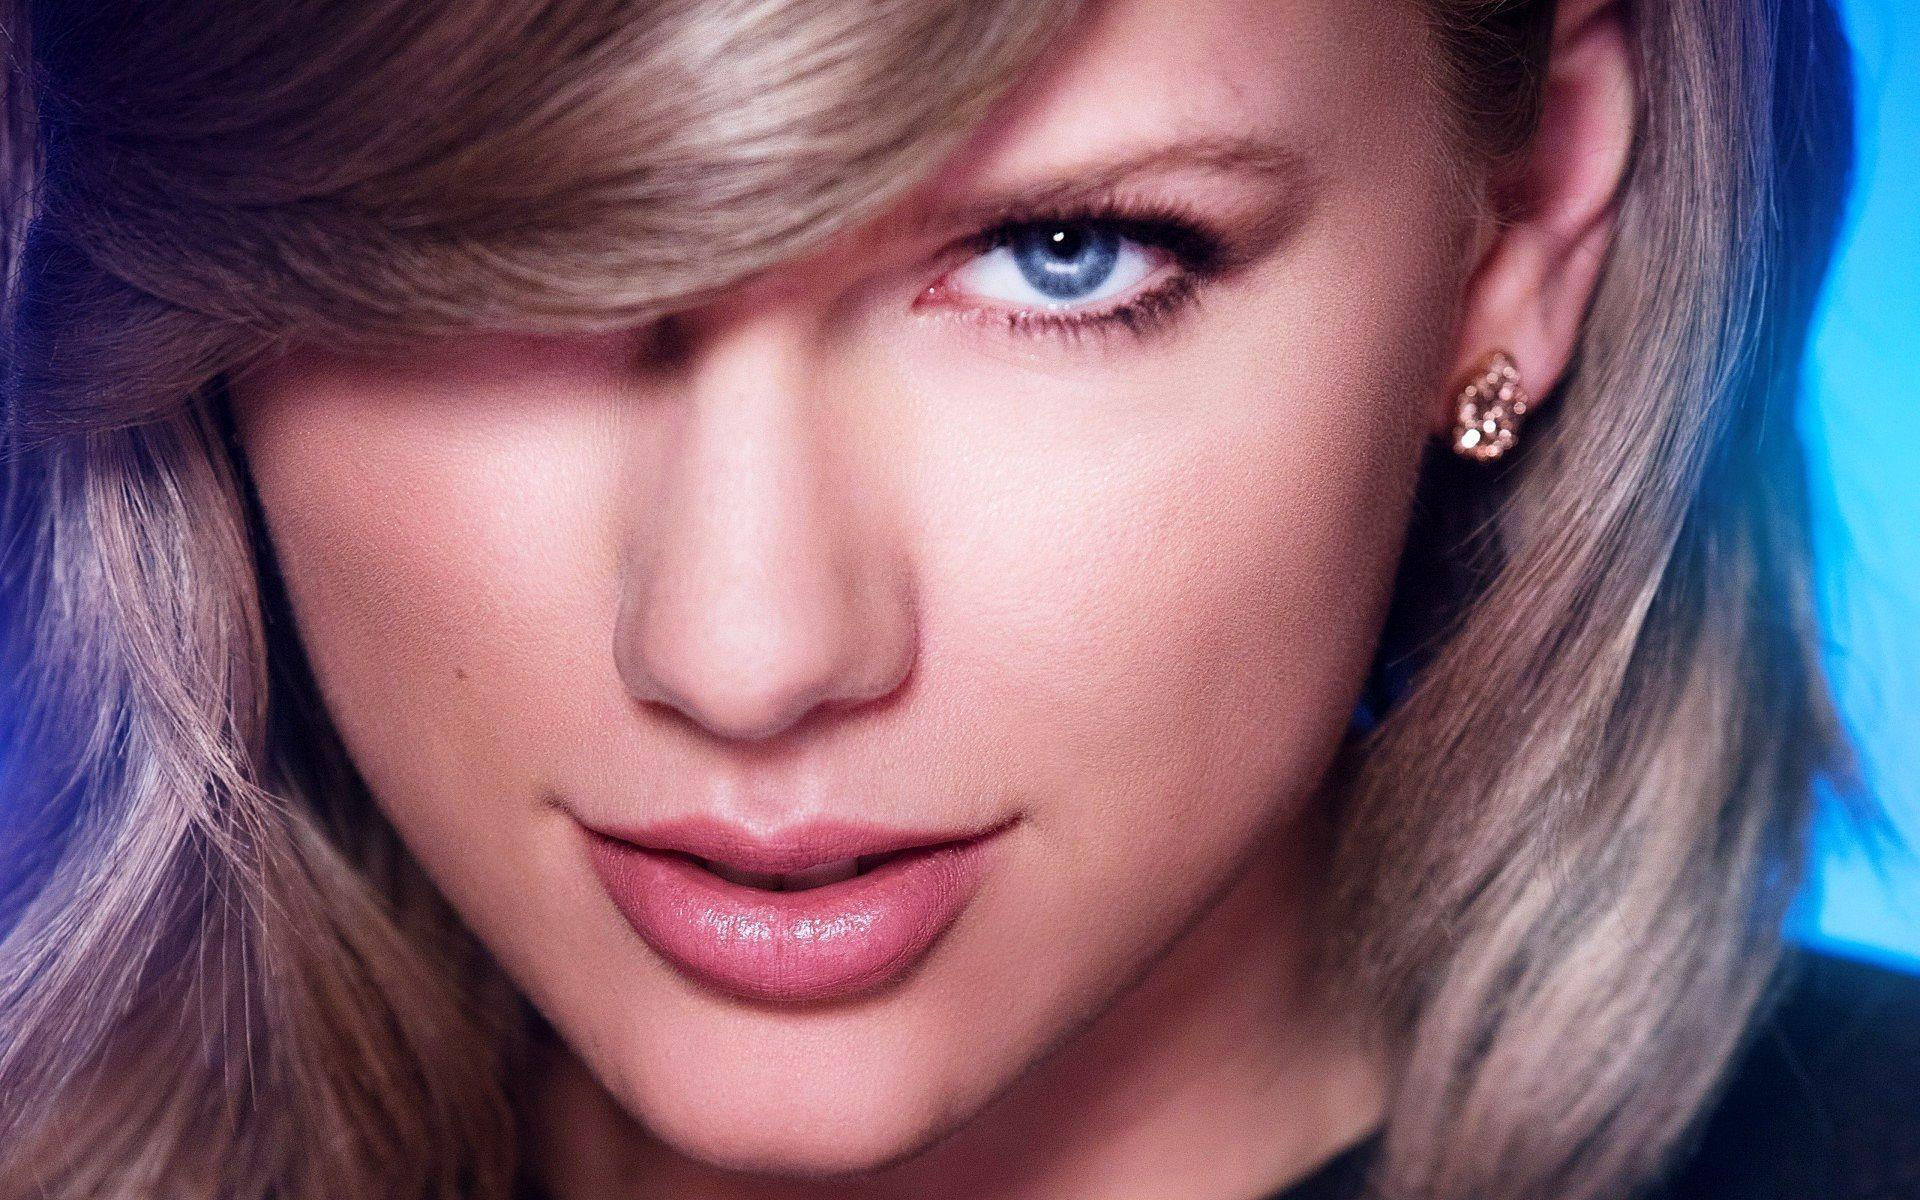 Taylor Swift Face 2017 Wallpaper 11561 - Baltana